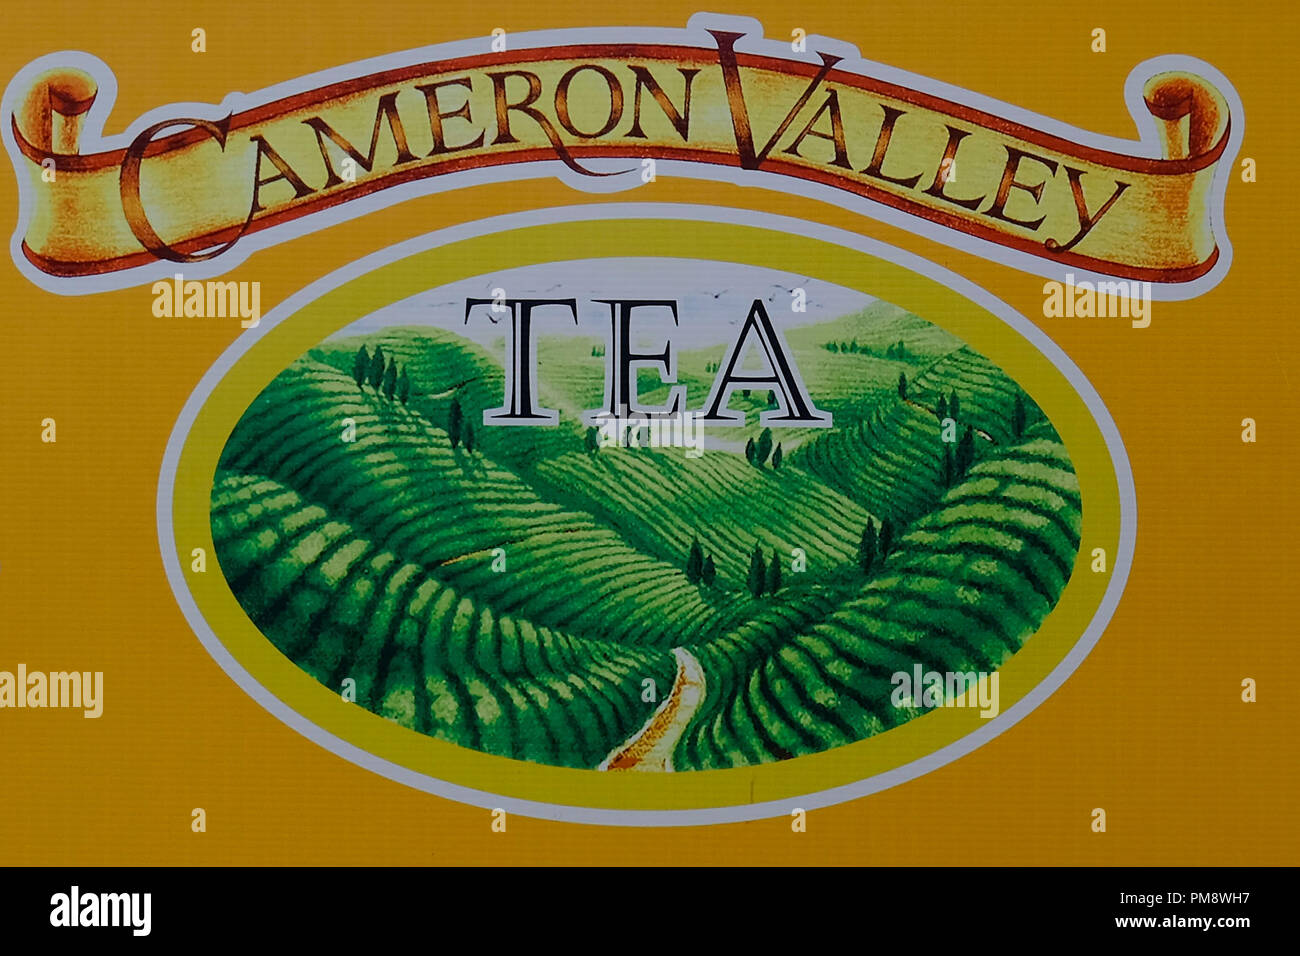 A panel showing a drawing of the Cameron Valley Tea.  The Cameron Highlands is one of a tourist destination located at Pahang, Malaysia and it is named after a British explorer and geologist, William Cameron. Since the discovery of Cameron Highlands, it has been an agricultural site's until to nowadays and the most well known plantation is tea. It is also rich with flora's and fauna's because the uniqueness climate of the Cameron Highlands. - Stock Image